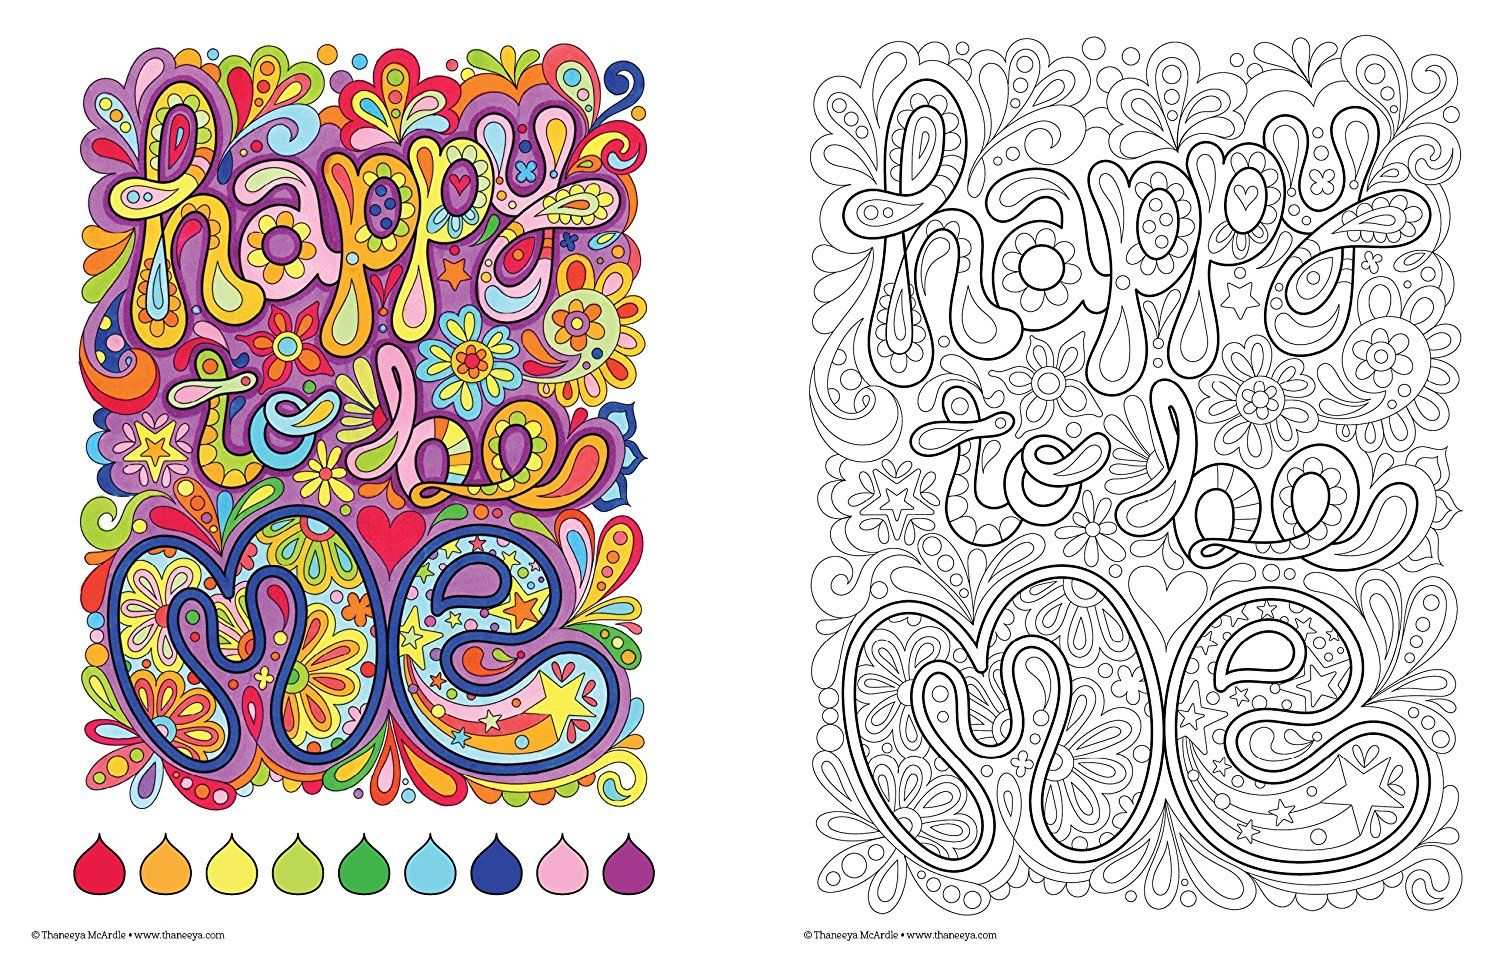 Good Vibes Coloring Book (Coloring Is Fun) - Adult Coloring Book ...